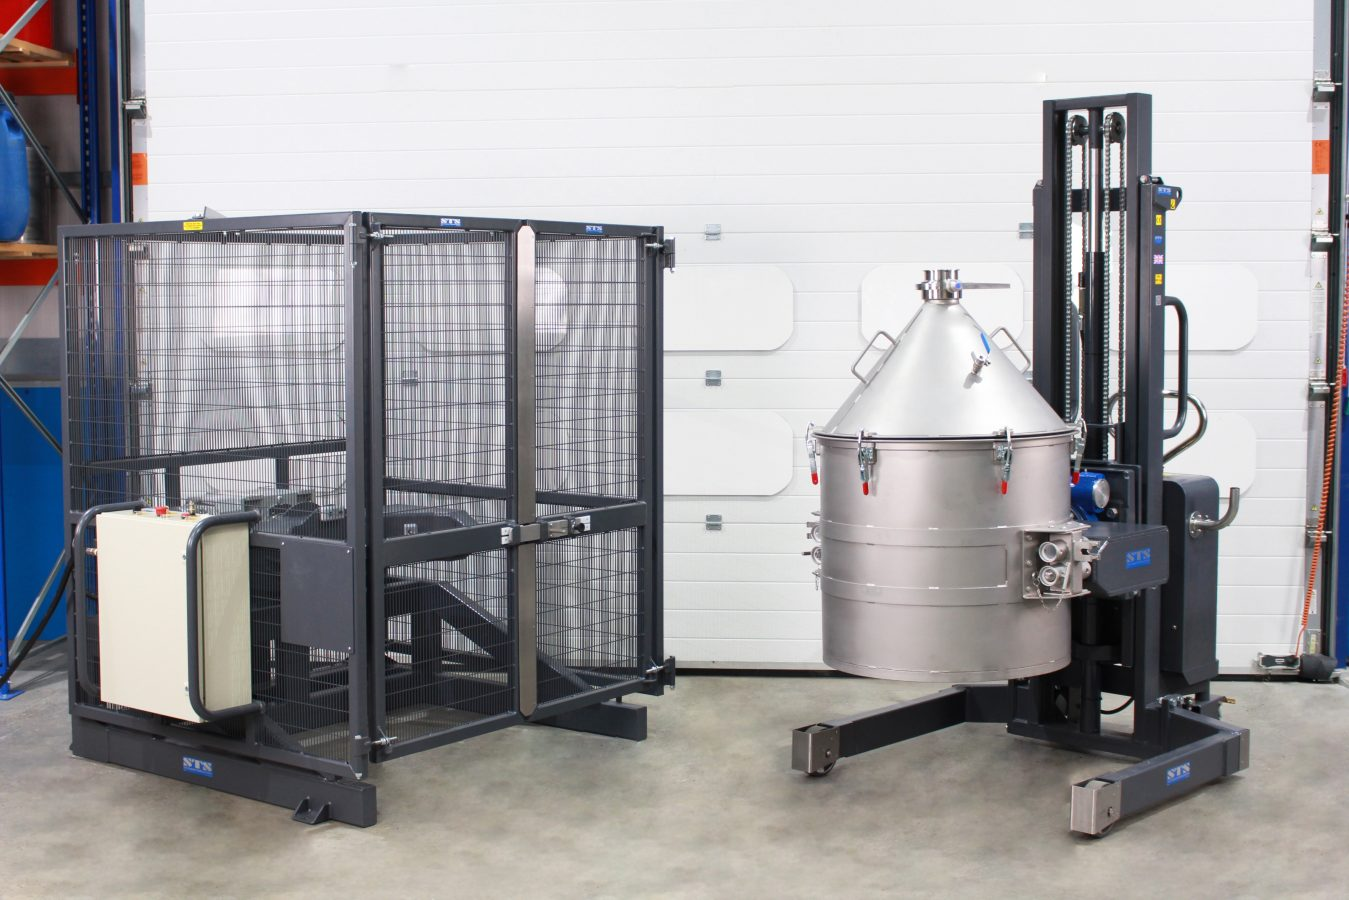 Image of additive powder mixing system and drum inverter